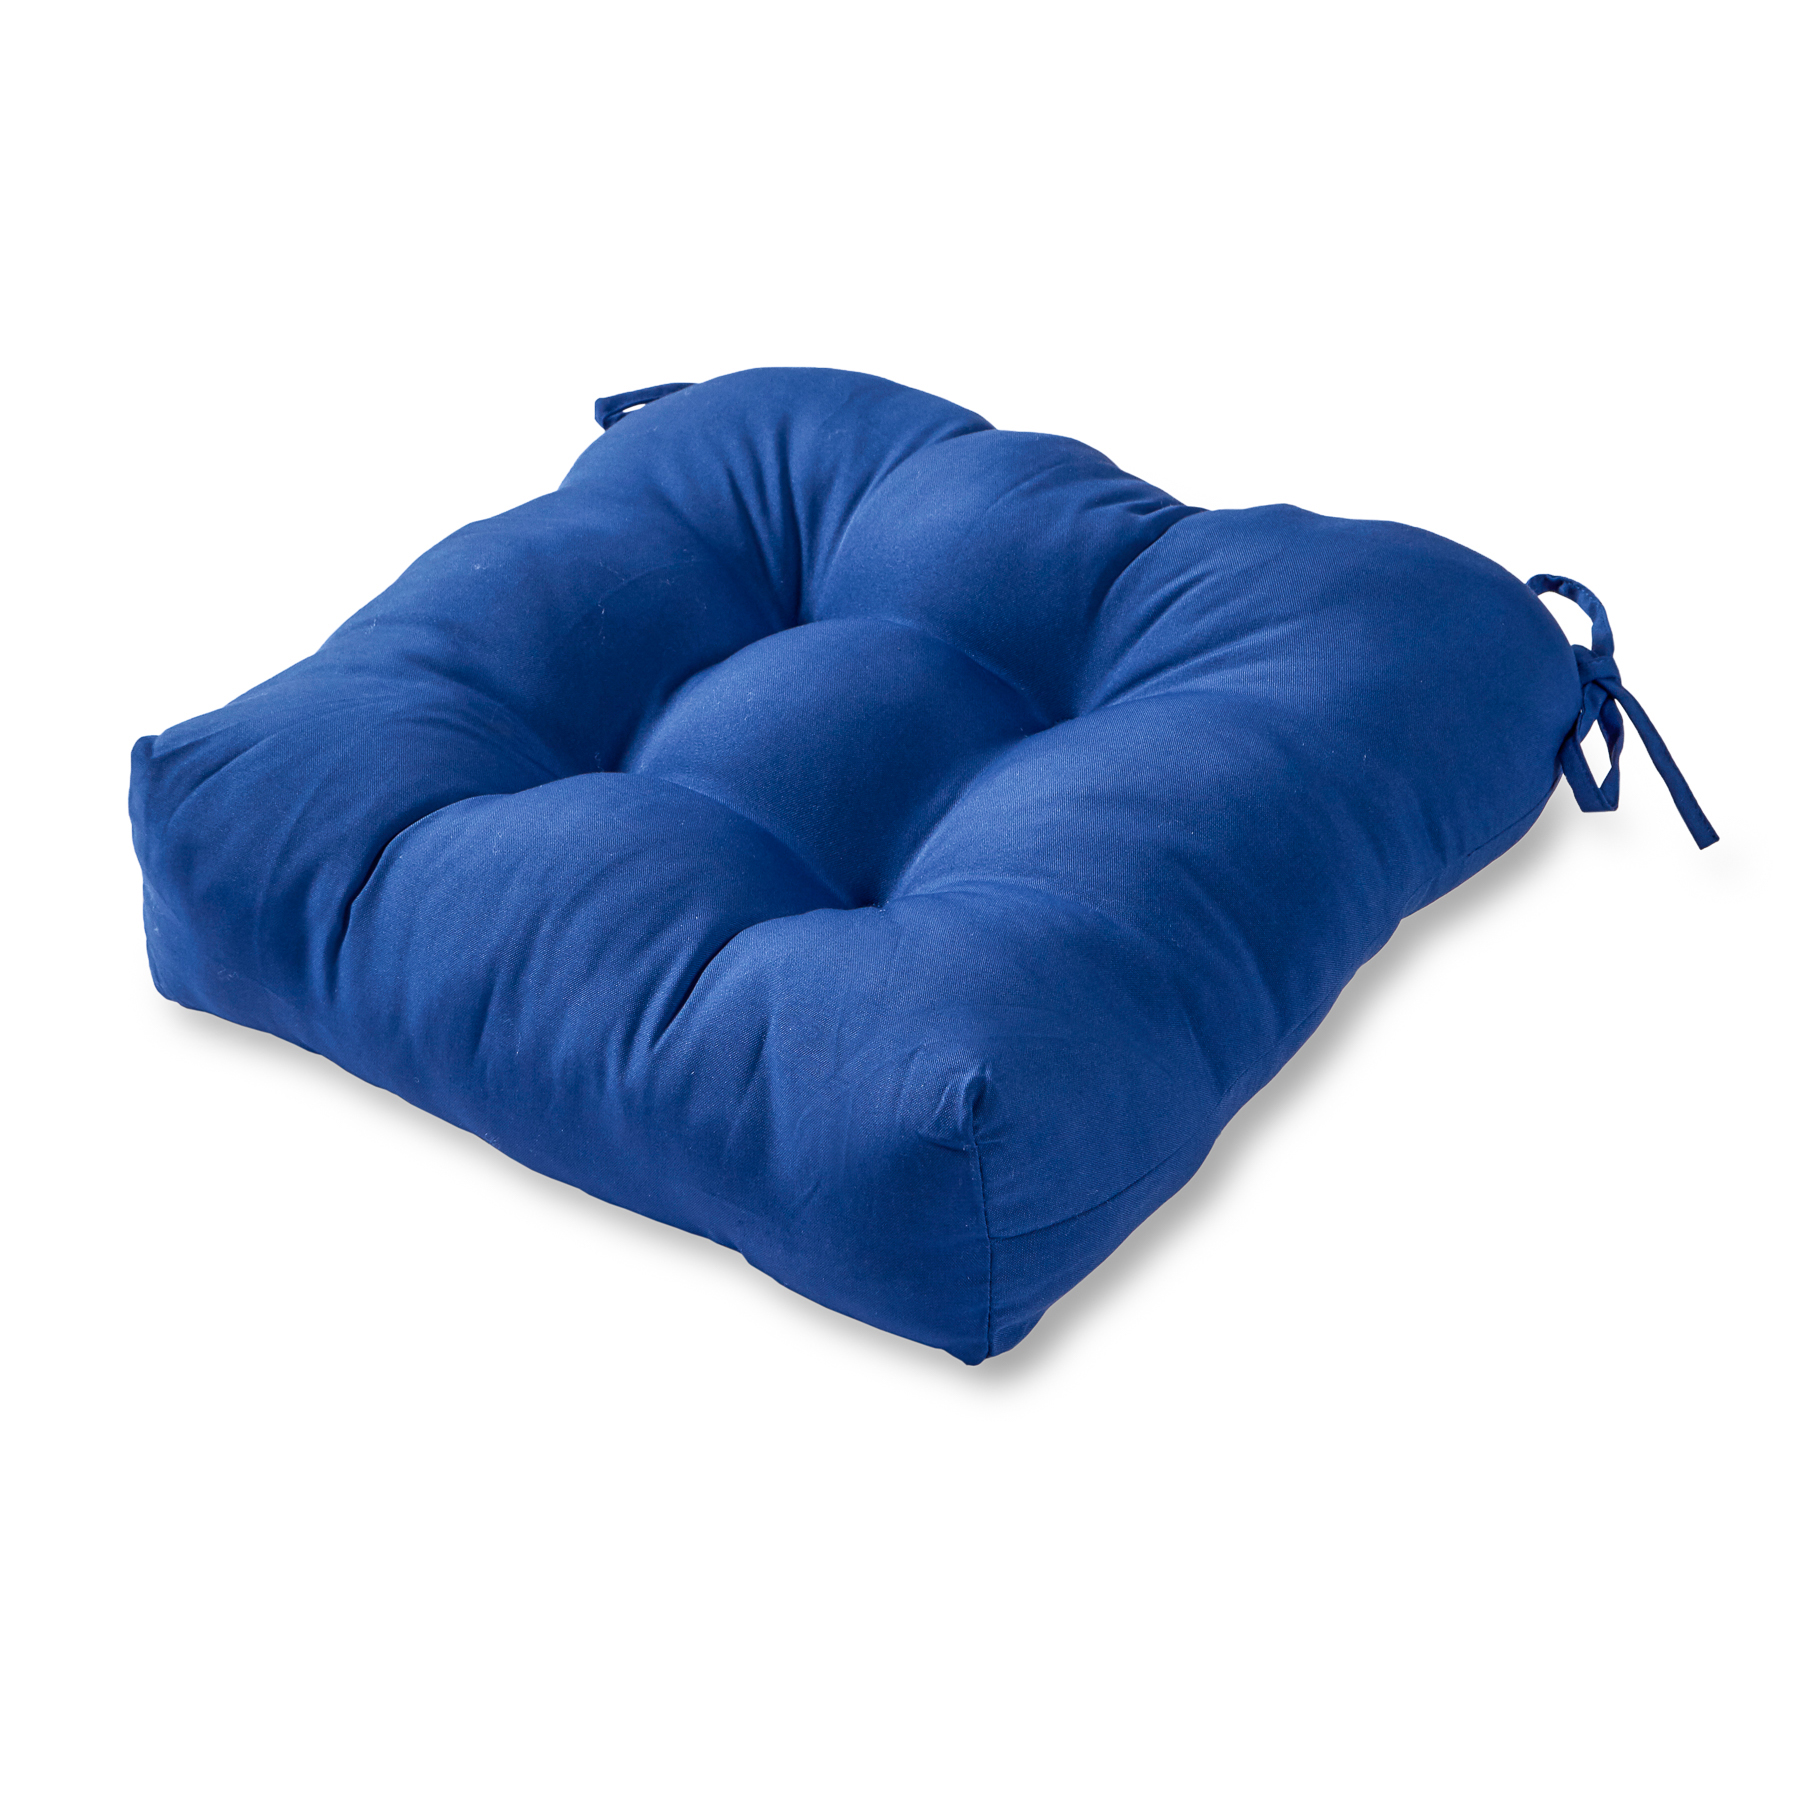 solid color 20 in square plush outdoor chair cushion